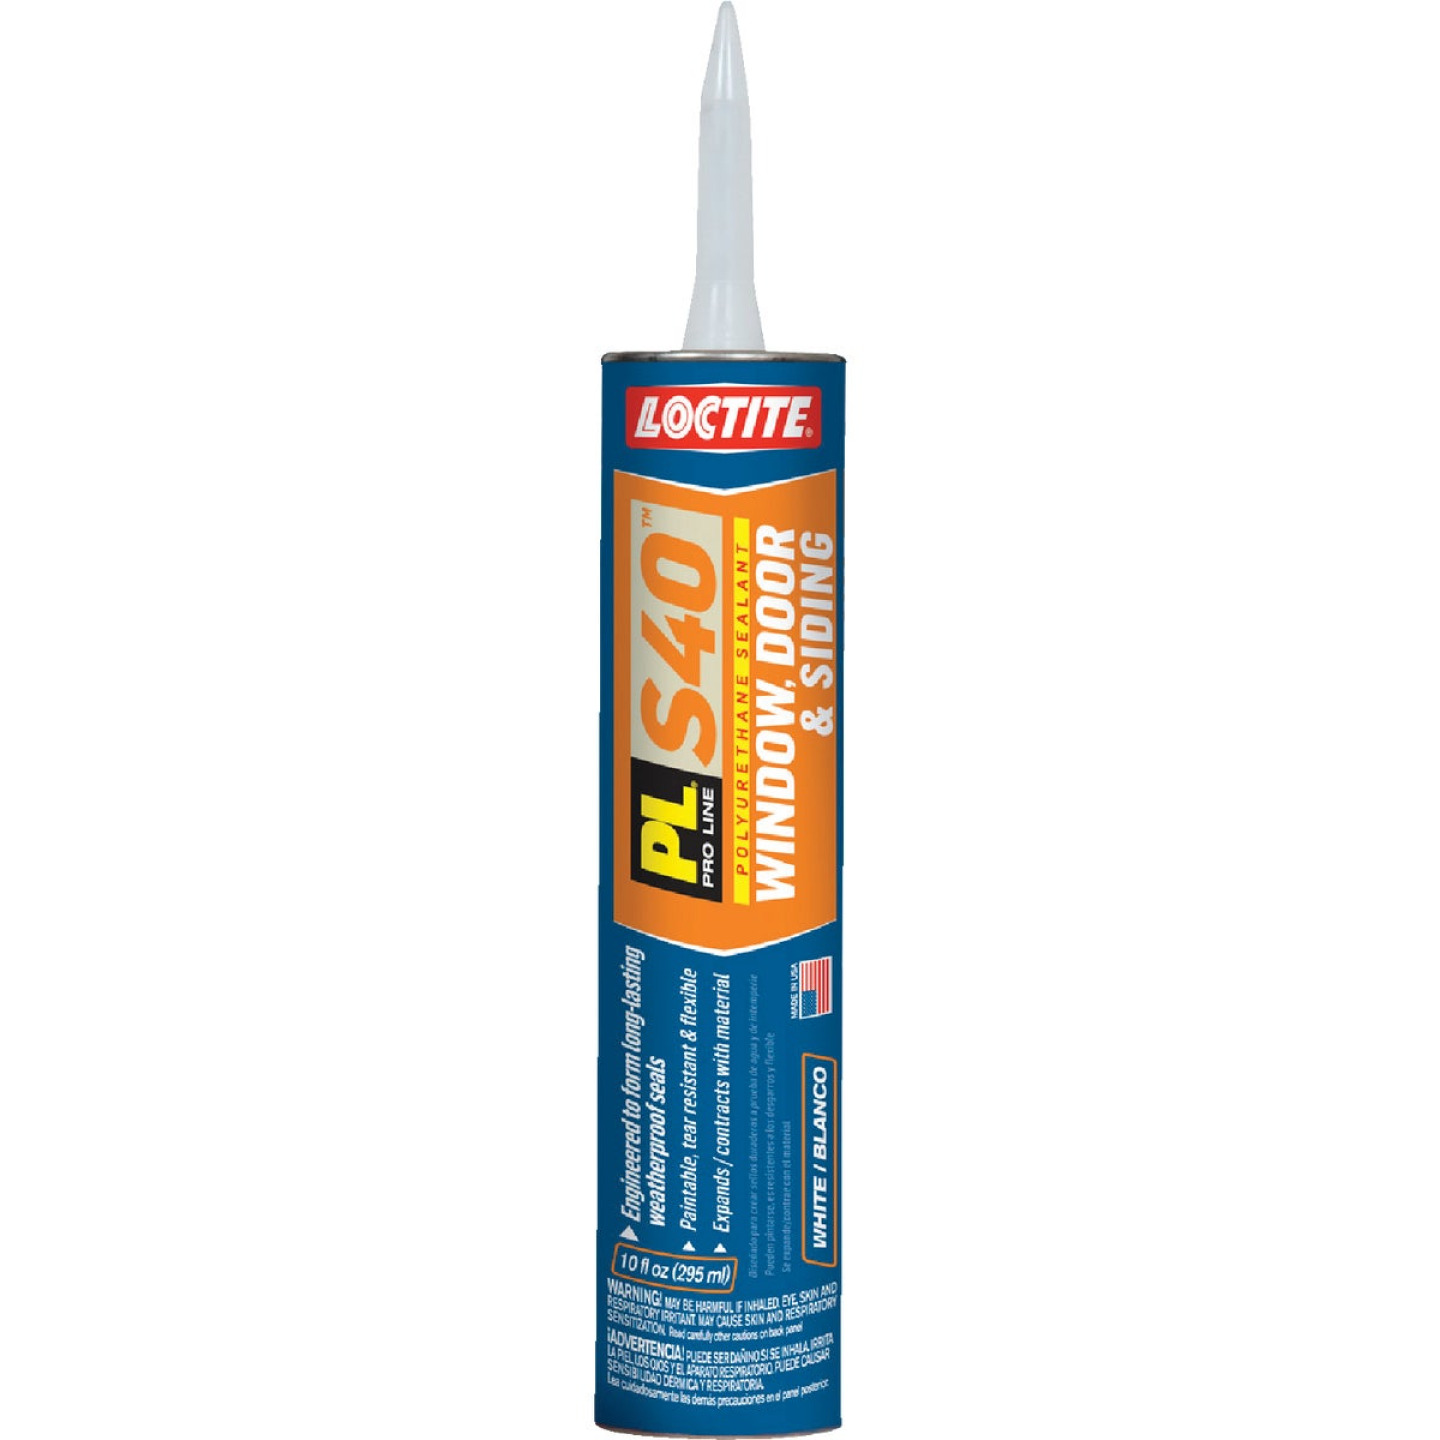 Loctite PL S40 10 Oz. Polyurethane Window, Door, & Siding Sealant, White Image 1